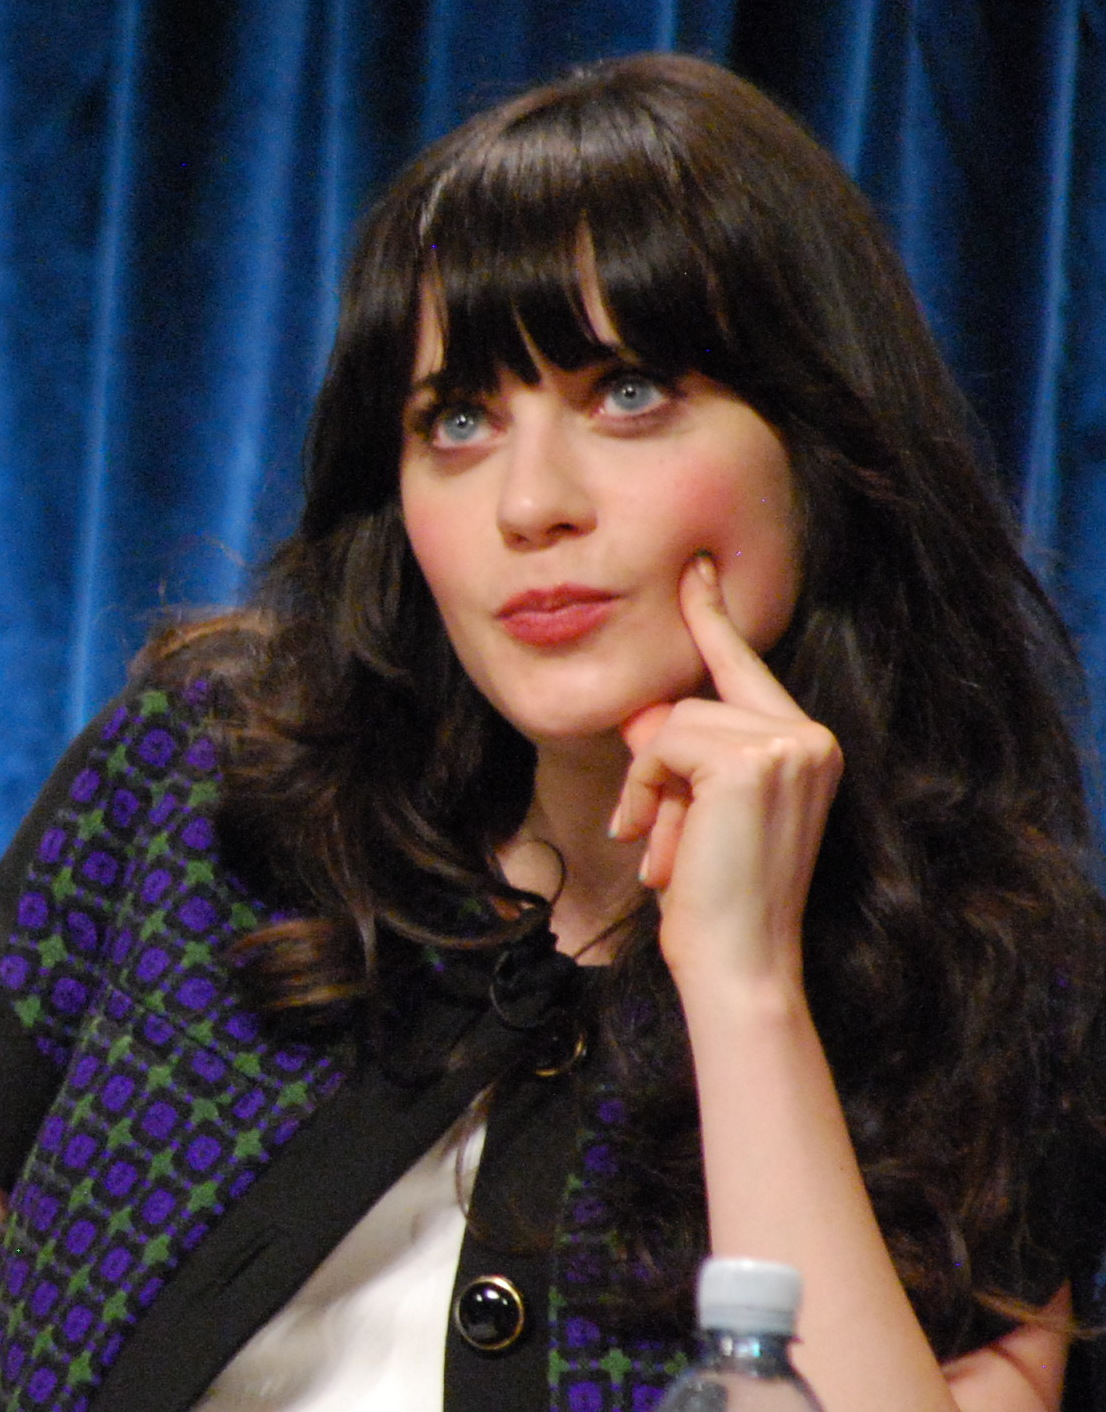 Zooey Deschanel nude 606